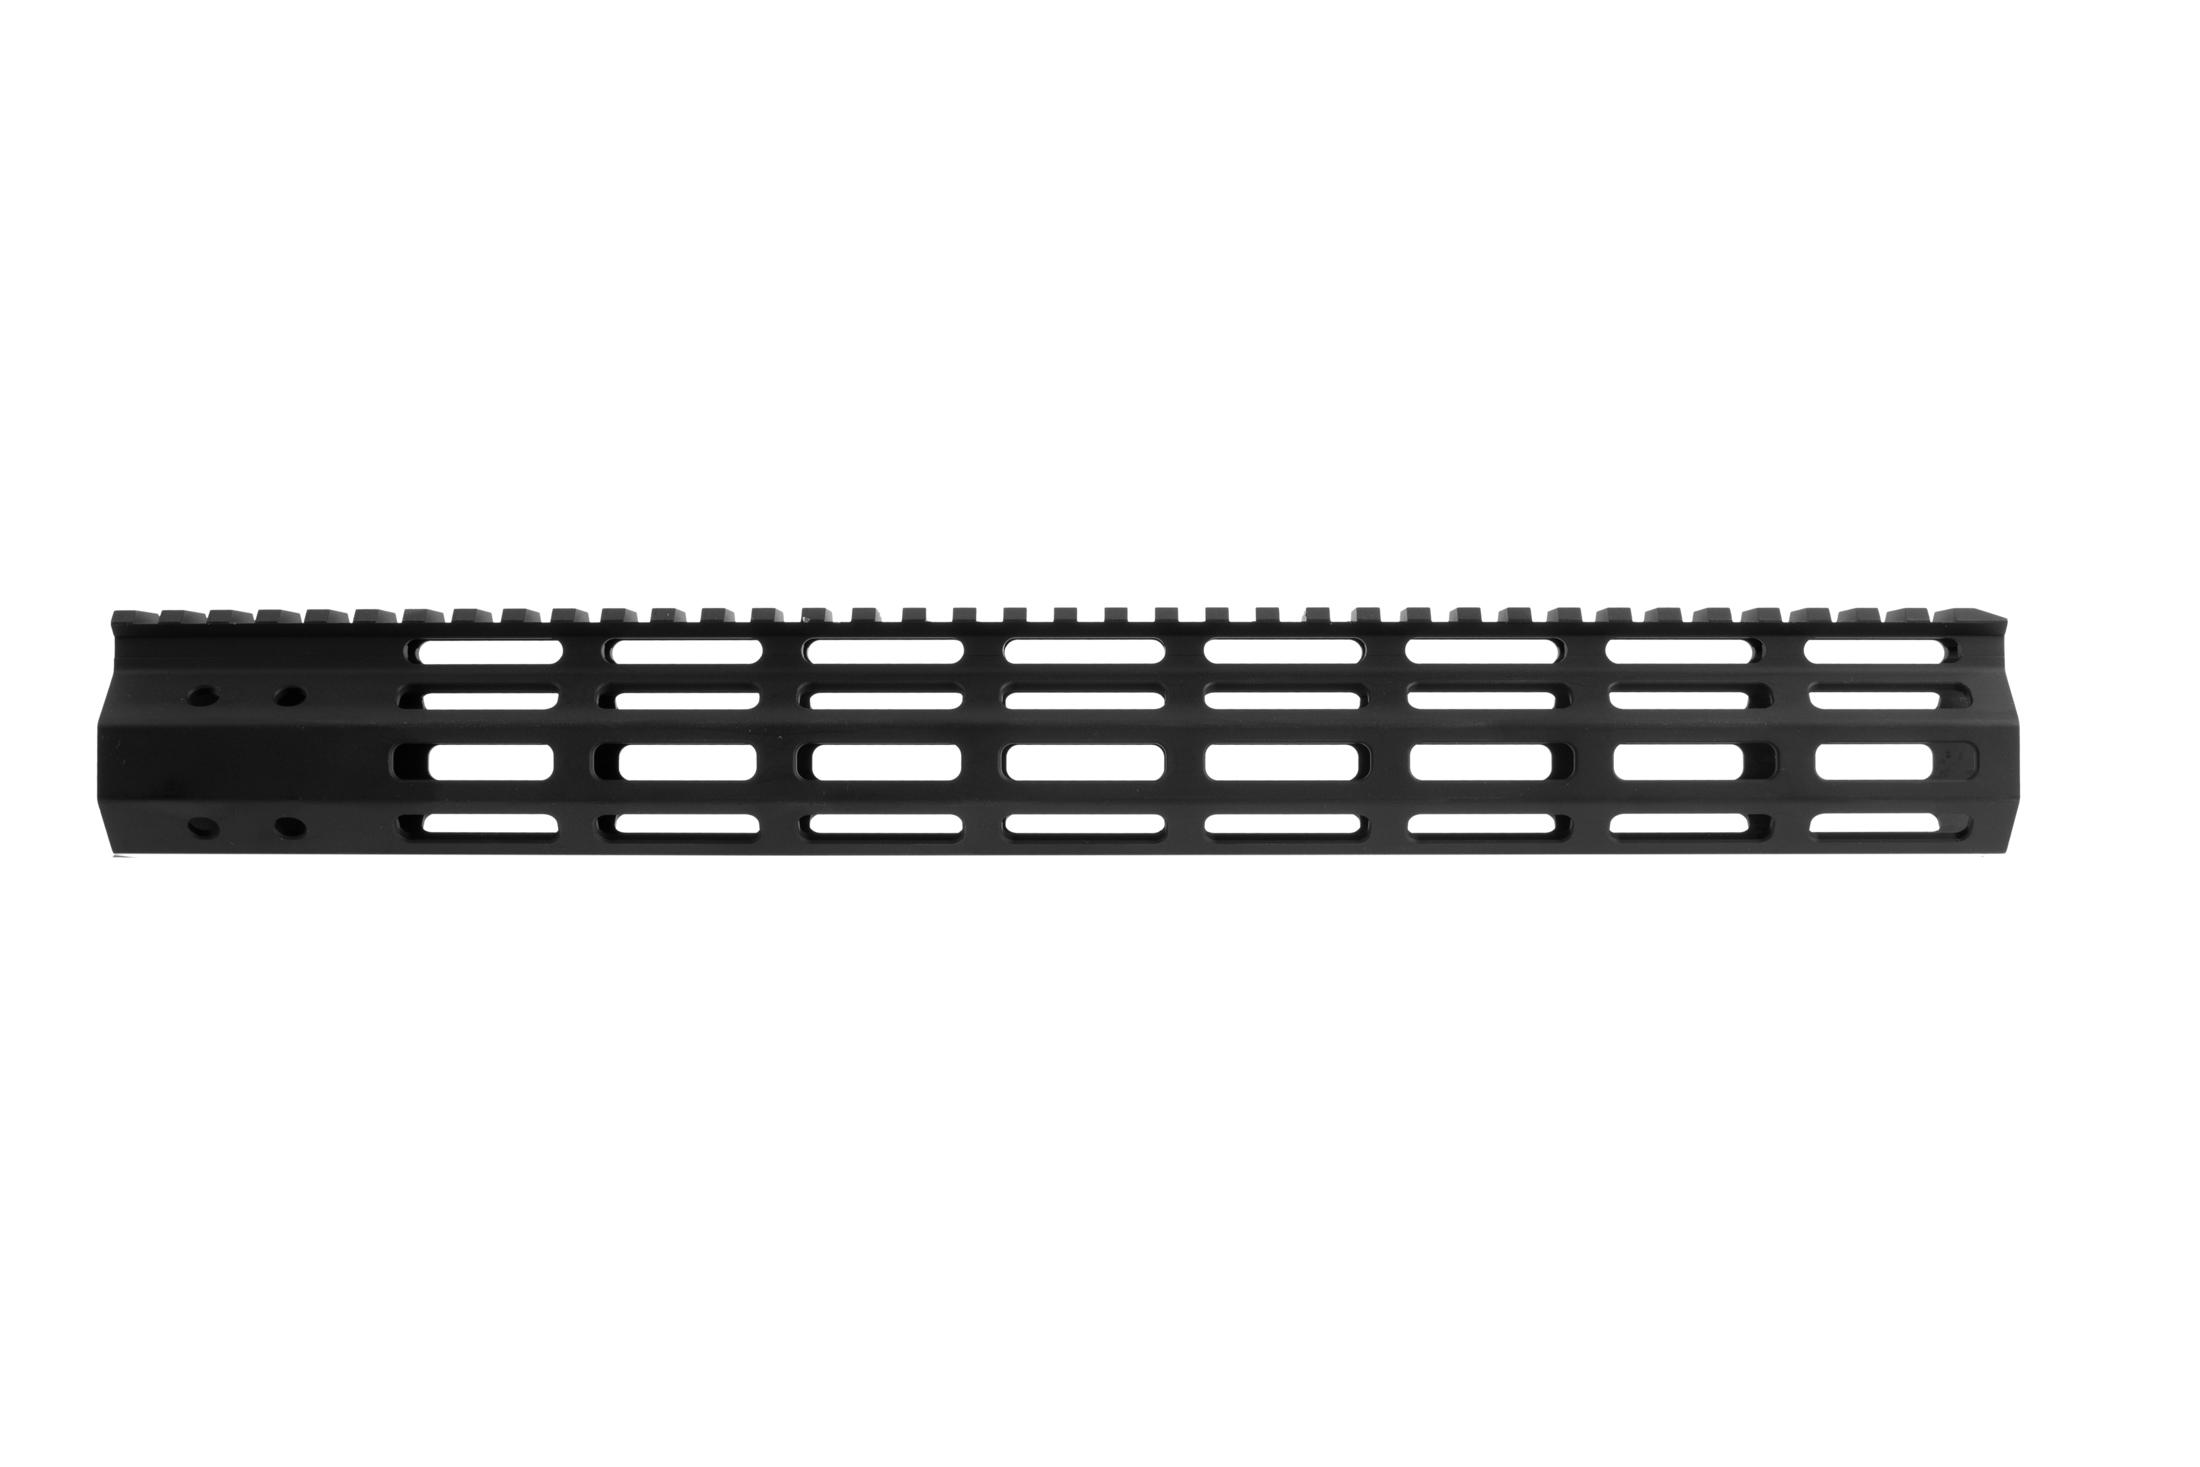 Primary Arms exclusive ultra light 15 free float rail from Foxtrot Mike Products